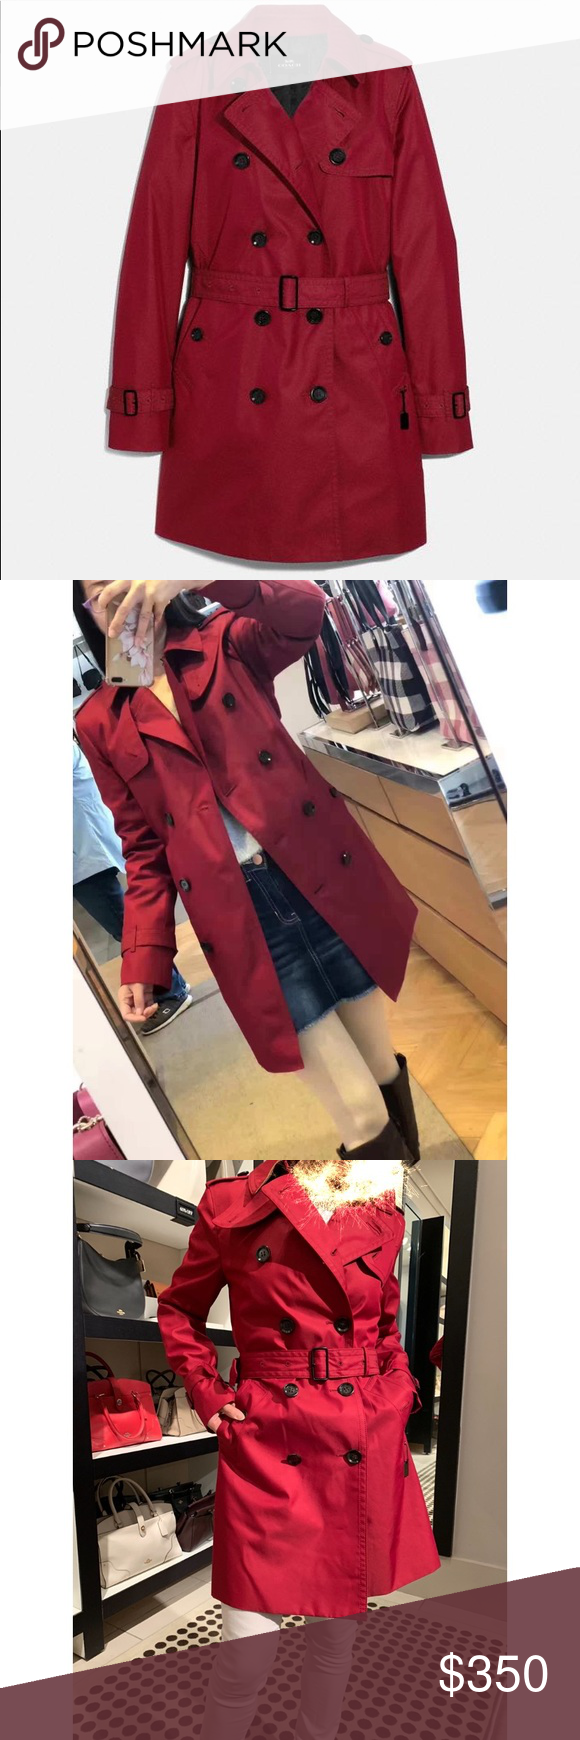 NWT Authentic Coach Women Trench Coat Red XXS in 2020